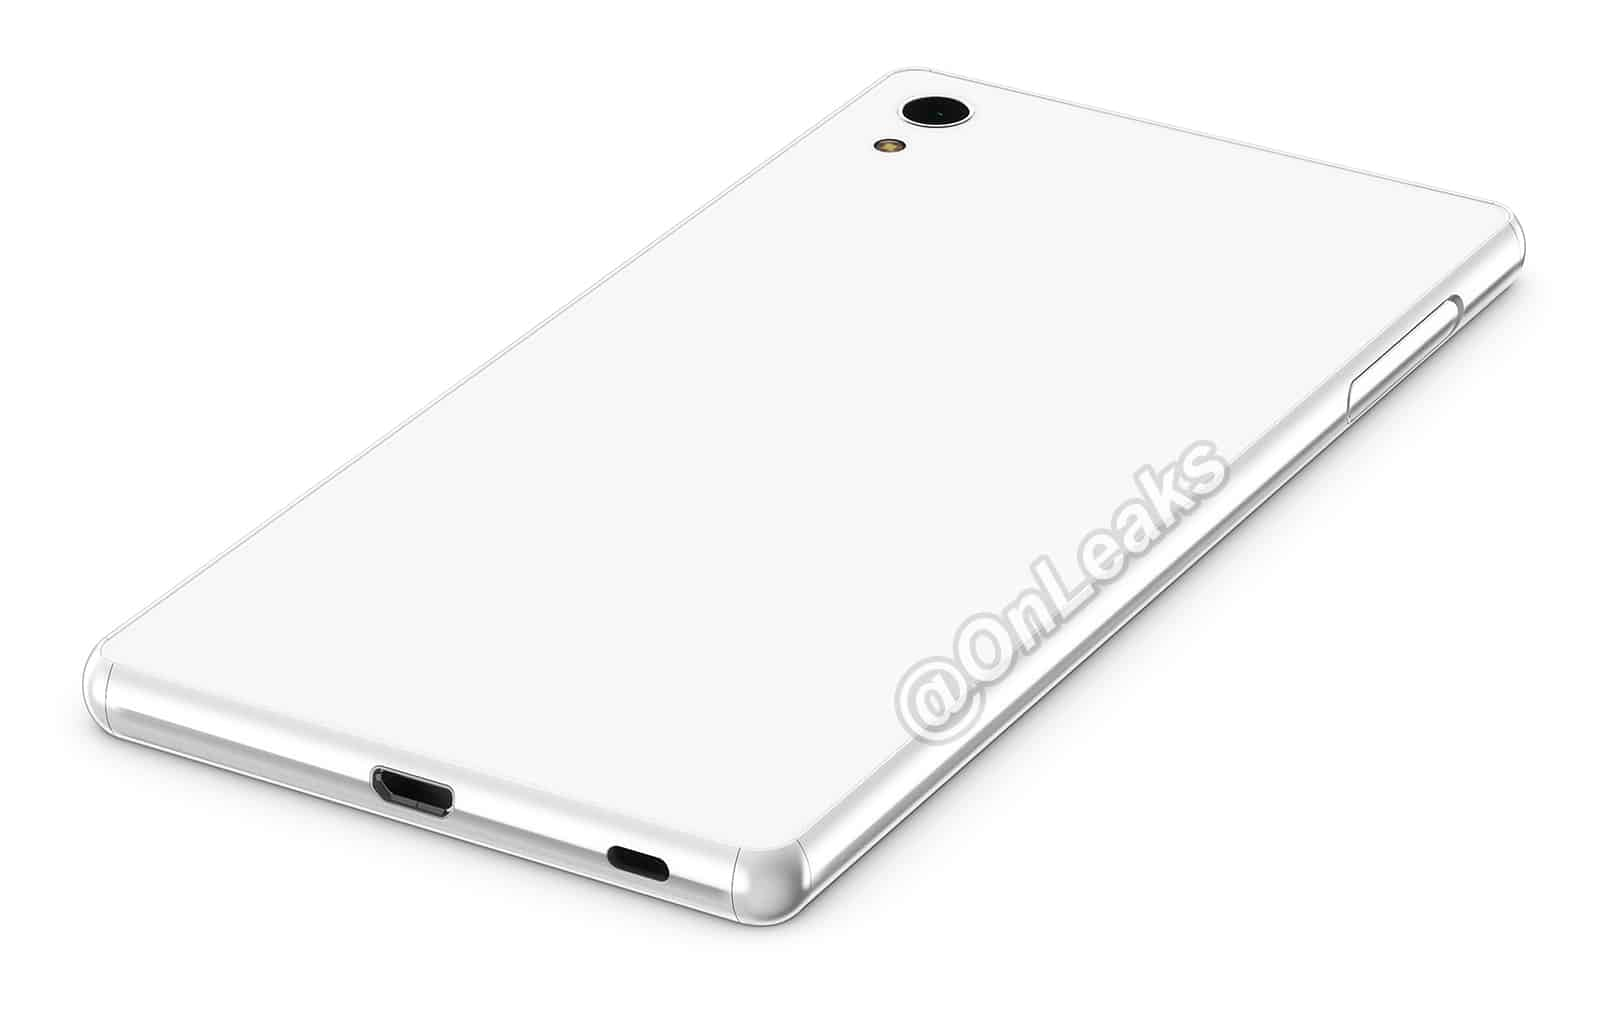 Sony Xperia Z4 Leaks Out Thanks to OnLeaks